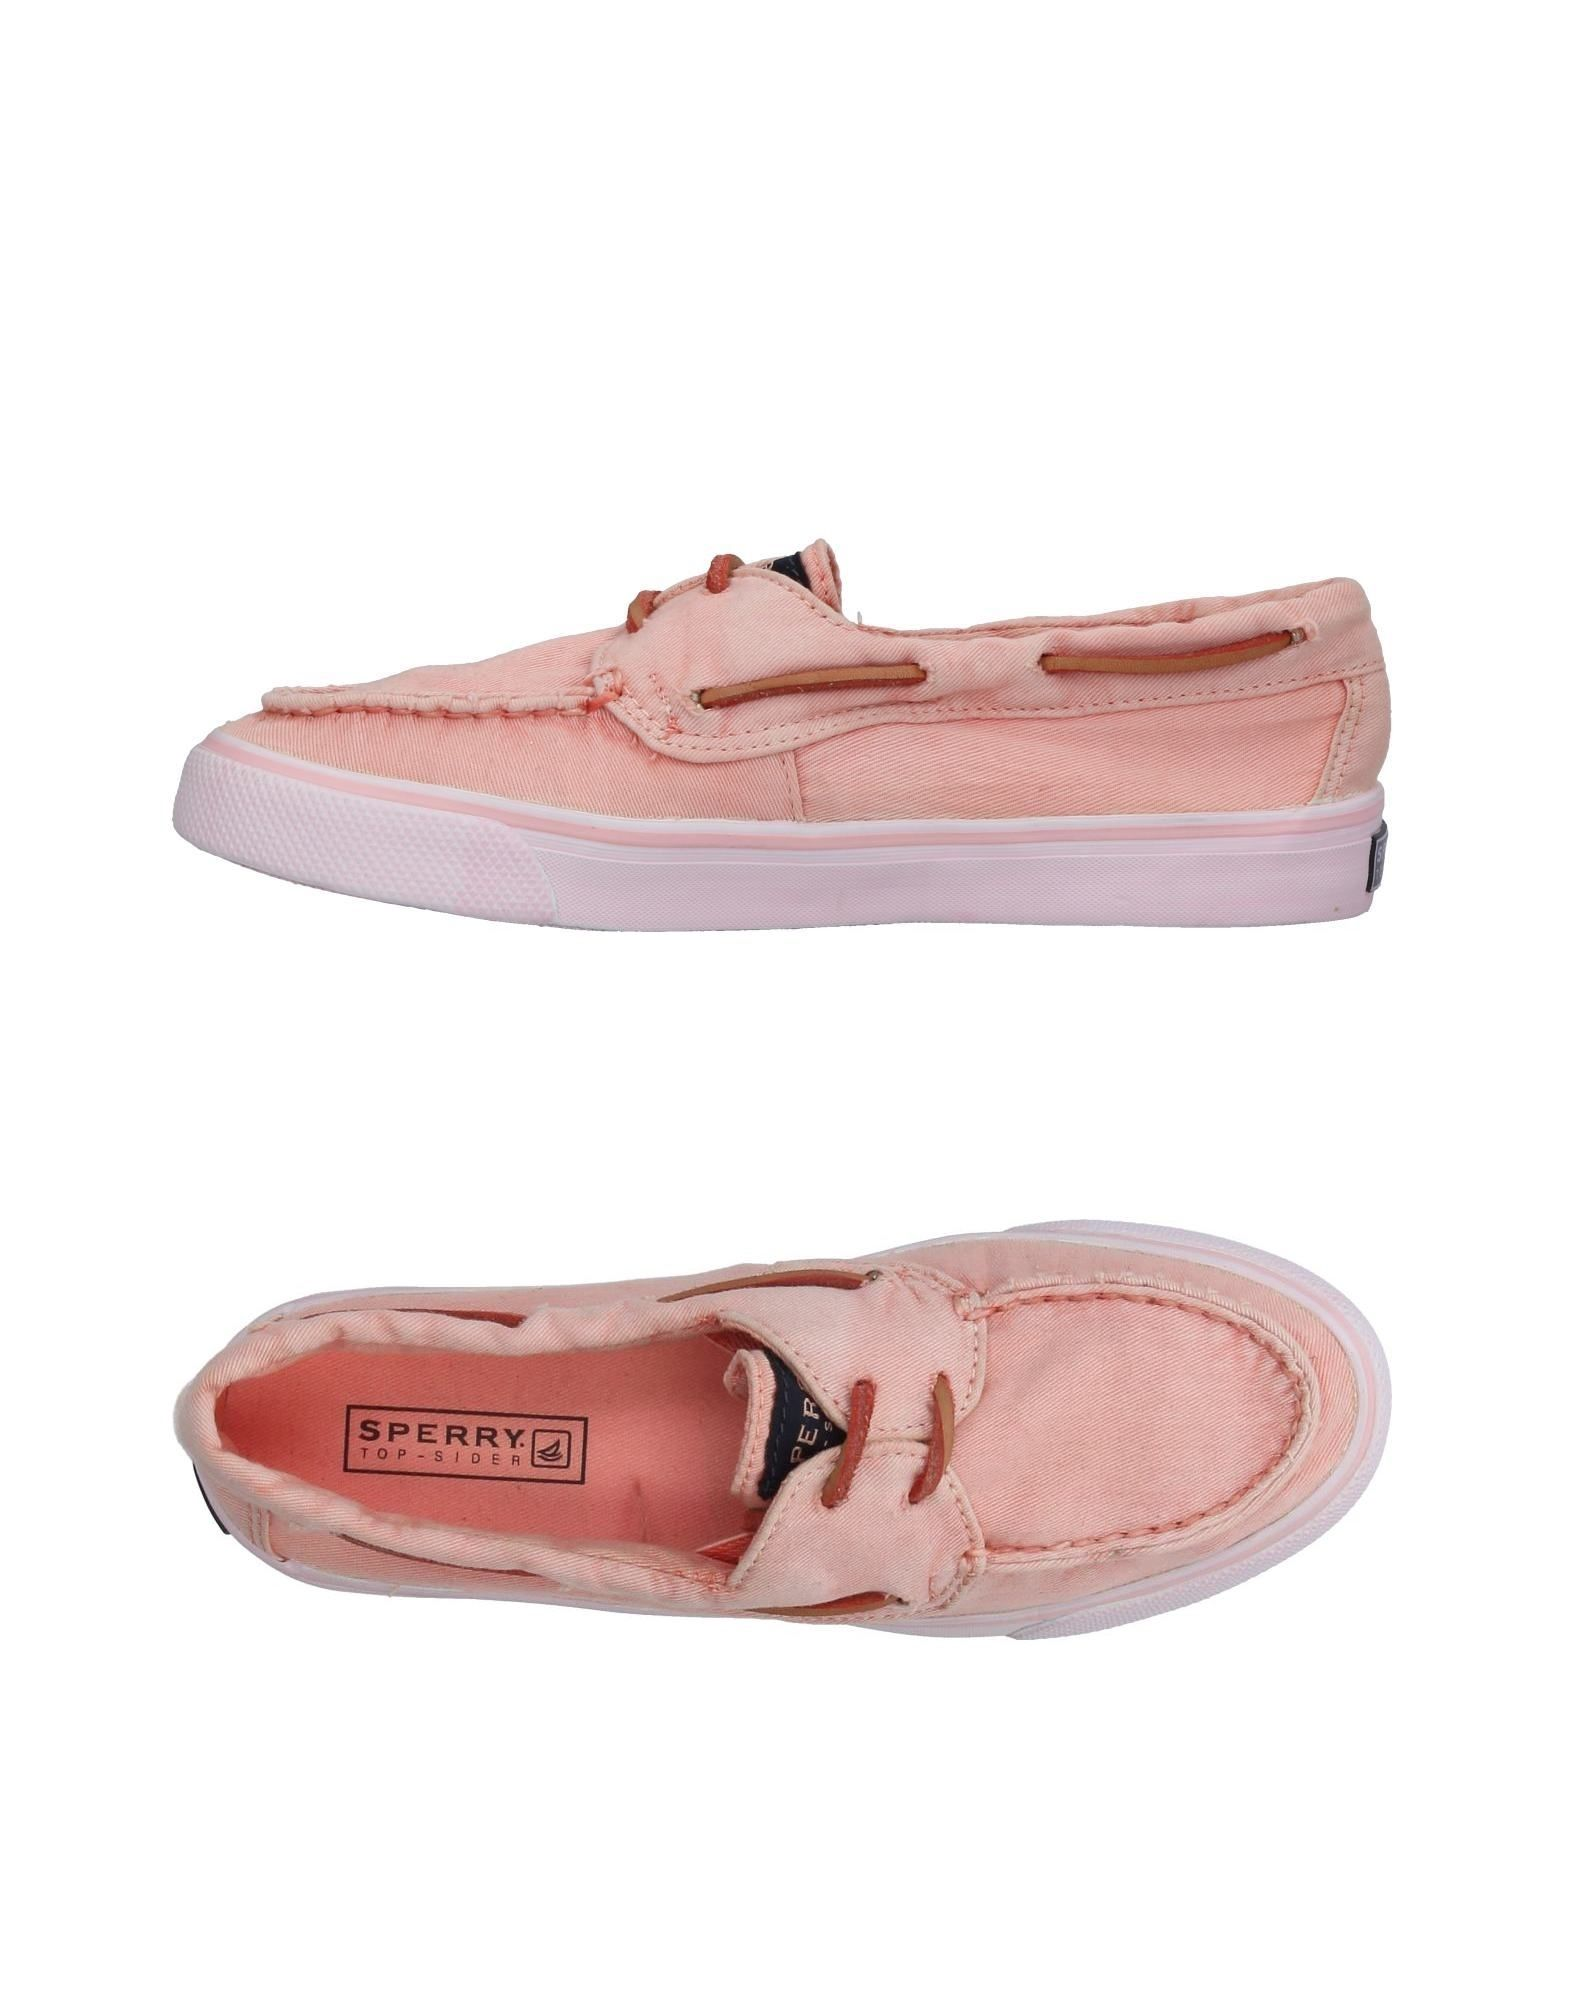 Mocassins Sperry Top-Sider Femme - Mocassins Sperry Top-Sider sur